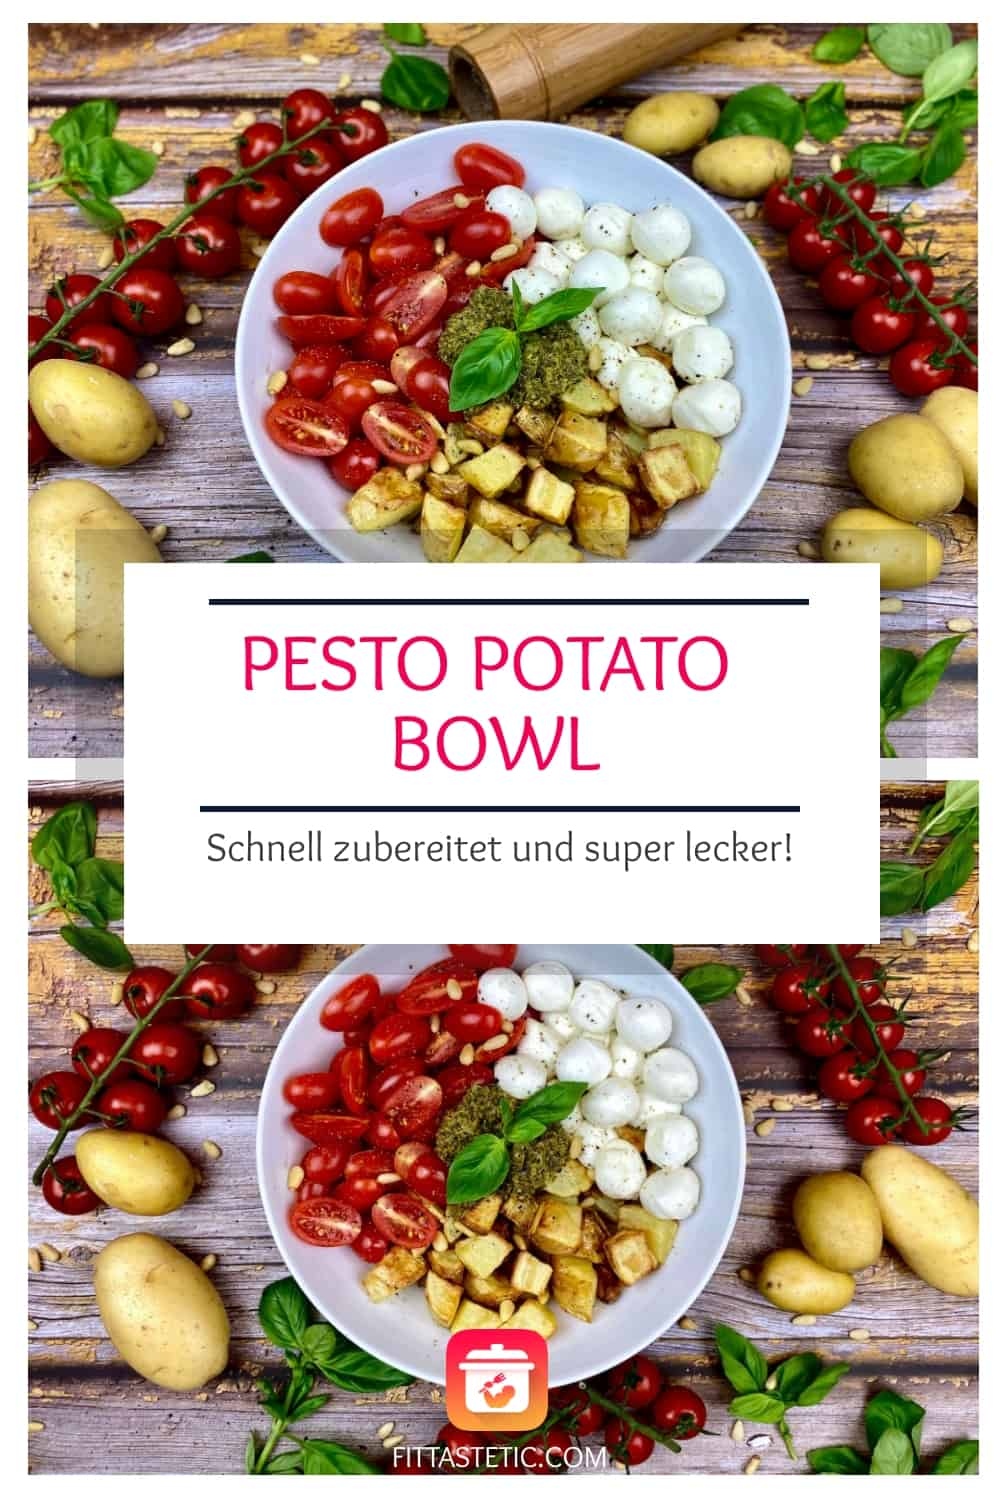 Pesto Potato Bowl - Vegetarische Buddha-Bowl